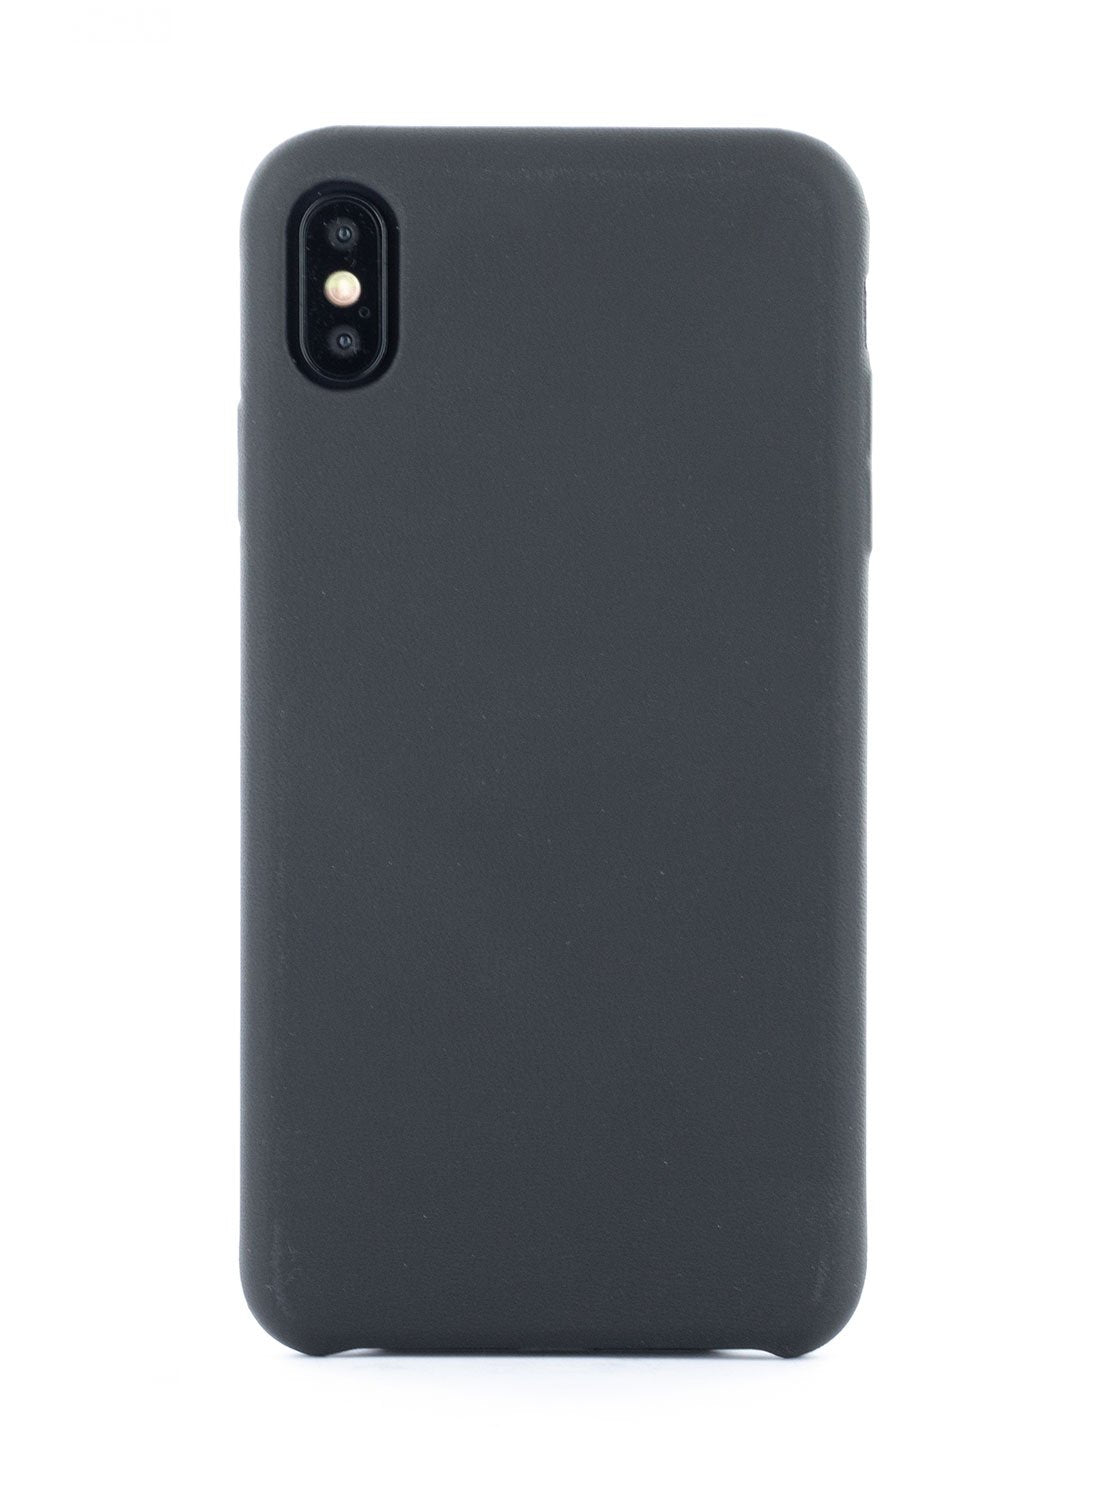 AEON Luxury Leather Wrapped Back Shell for iPhone XS Max - Beluga (Black)